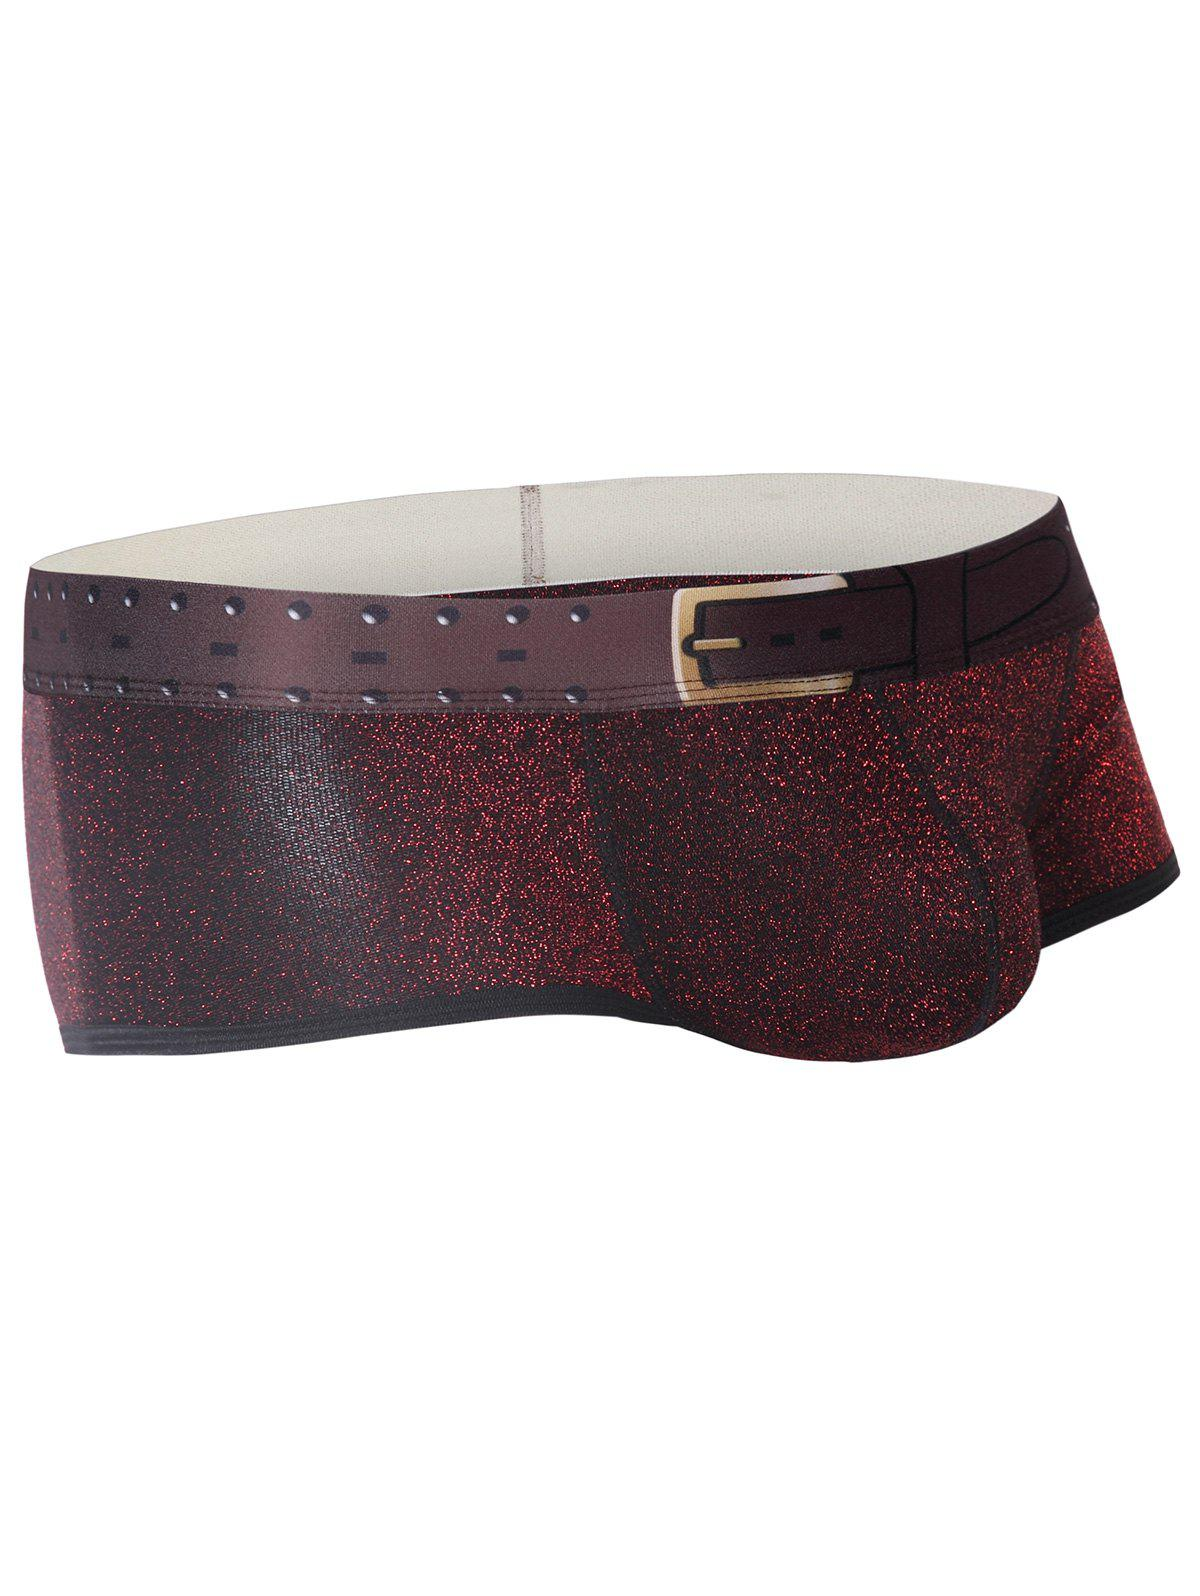 Trunk Design Imprimé Pouch U Tronc - Rouge vineux XL